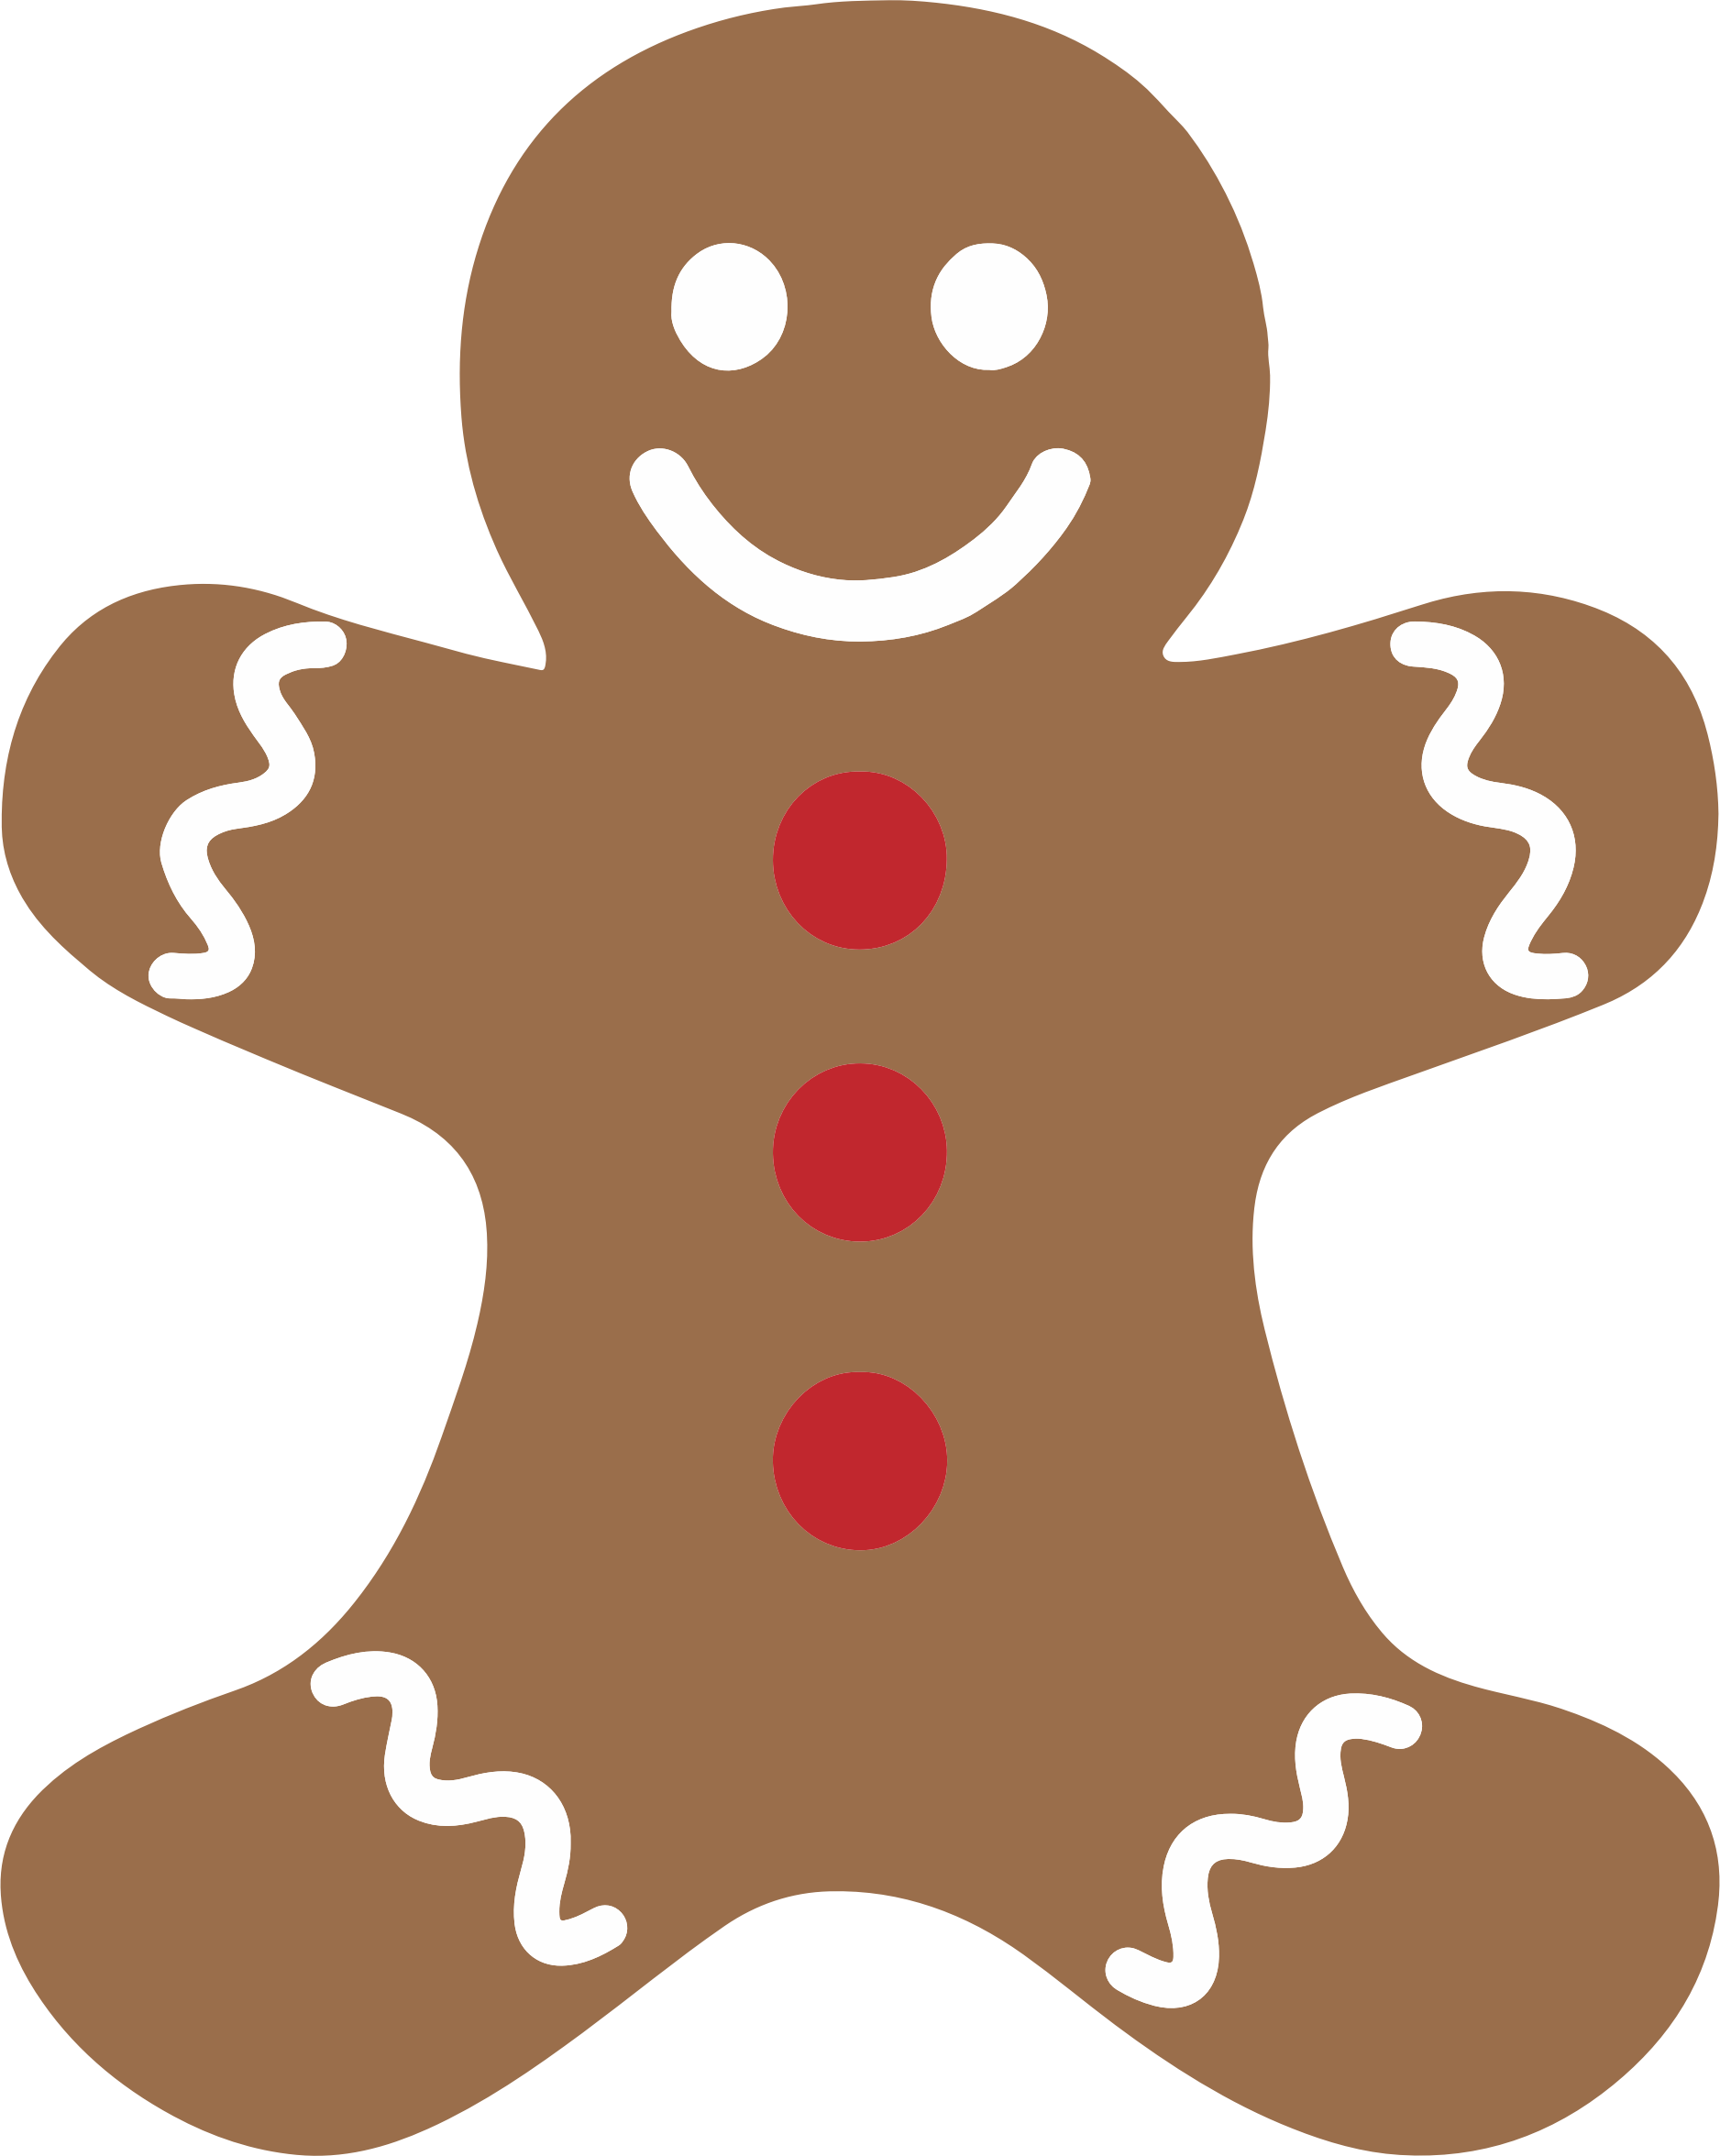 Gingerbread People Png - The Gingerbread Man Gingerbread house Clip art - ginger png ...